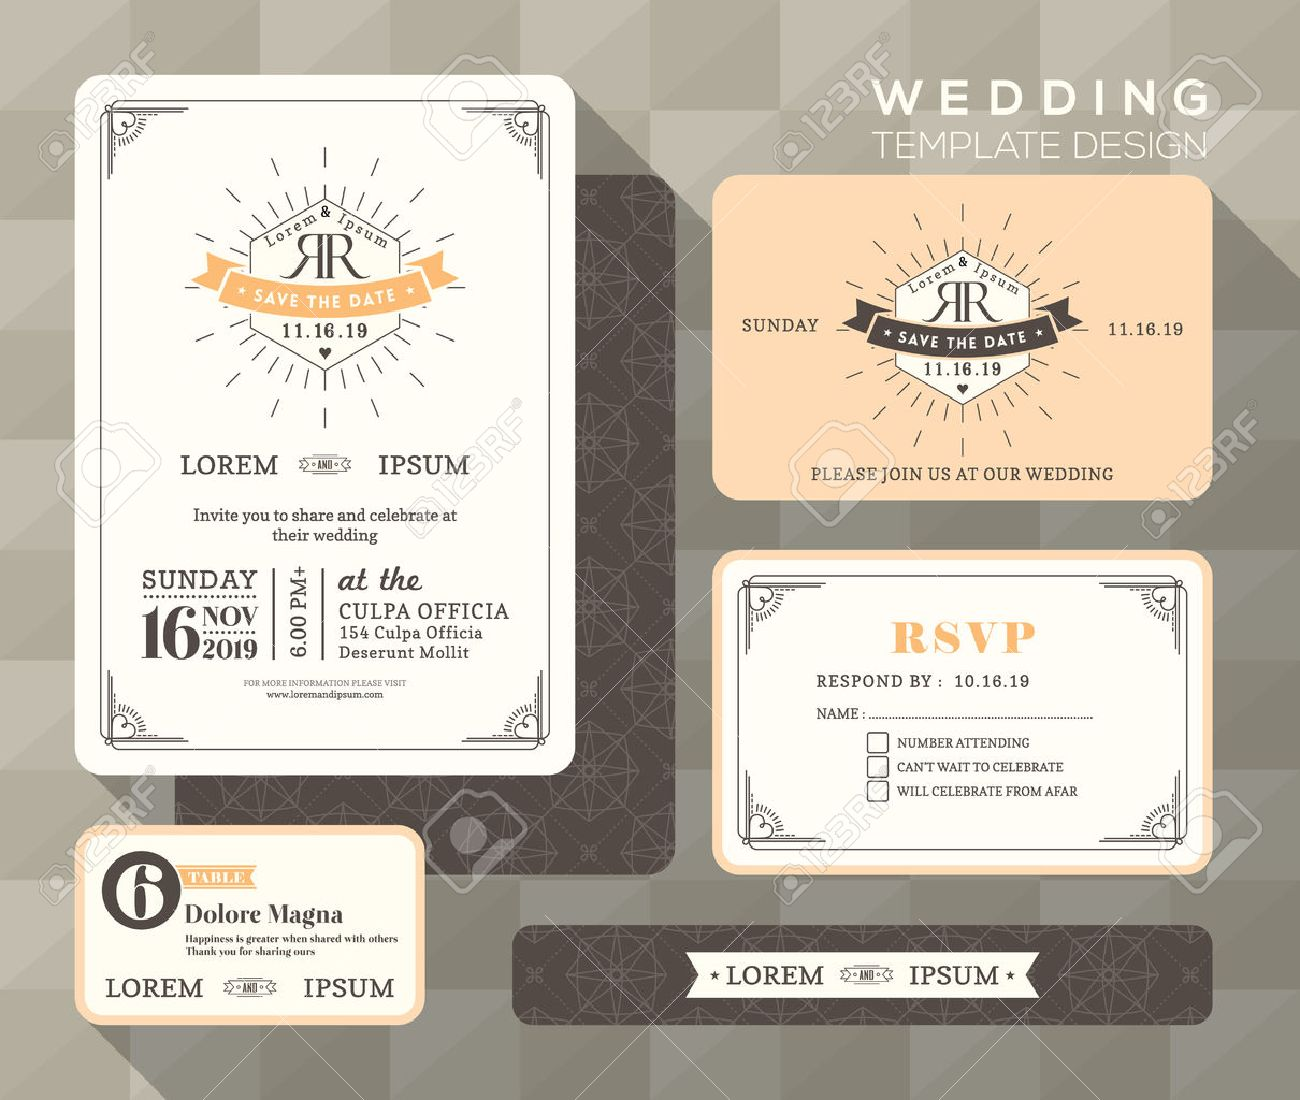 39559140 Vintage wedding invitation set design Template Vector place card response card save the date card Stock Vector vintage wedding invitation set design template vector place card,Invitation And Response Card Set